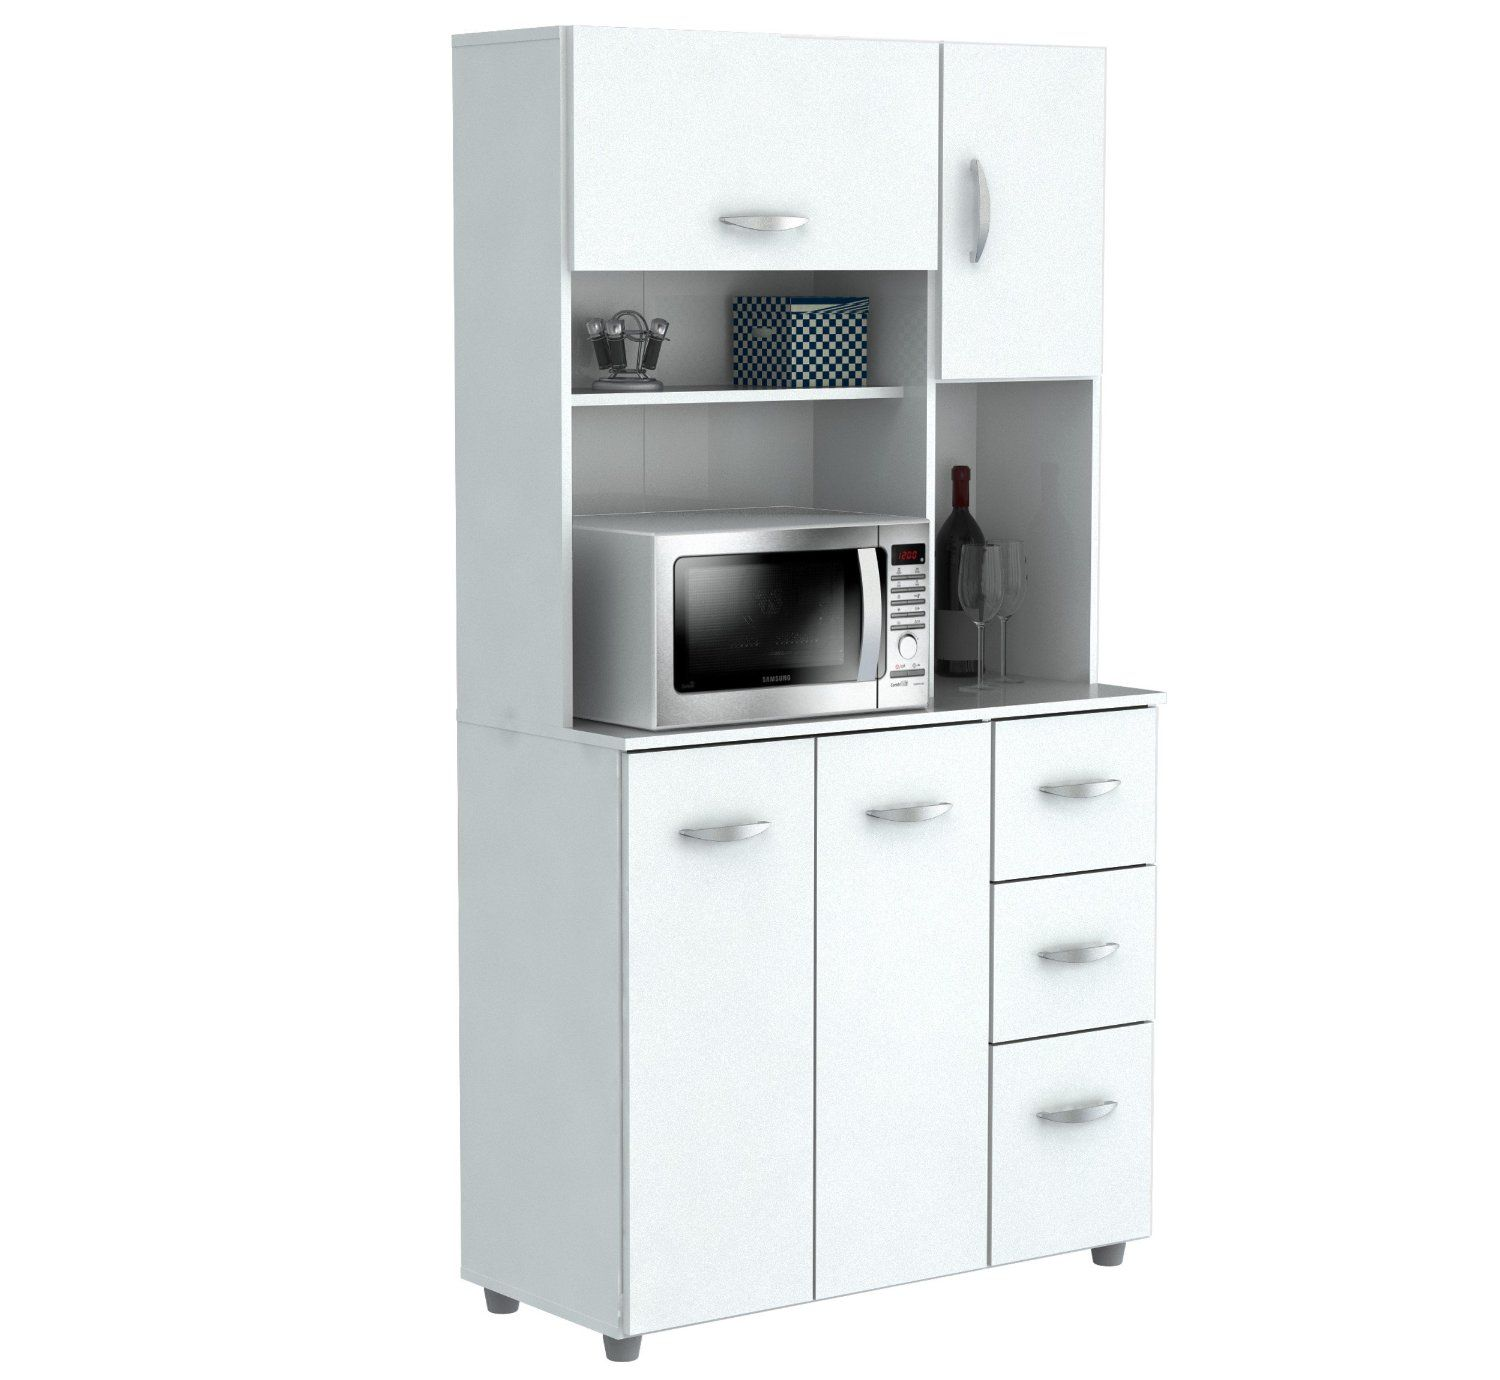 microwave carts with storage ikea | Office | Pinterest | Microwave ...